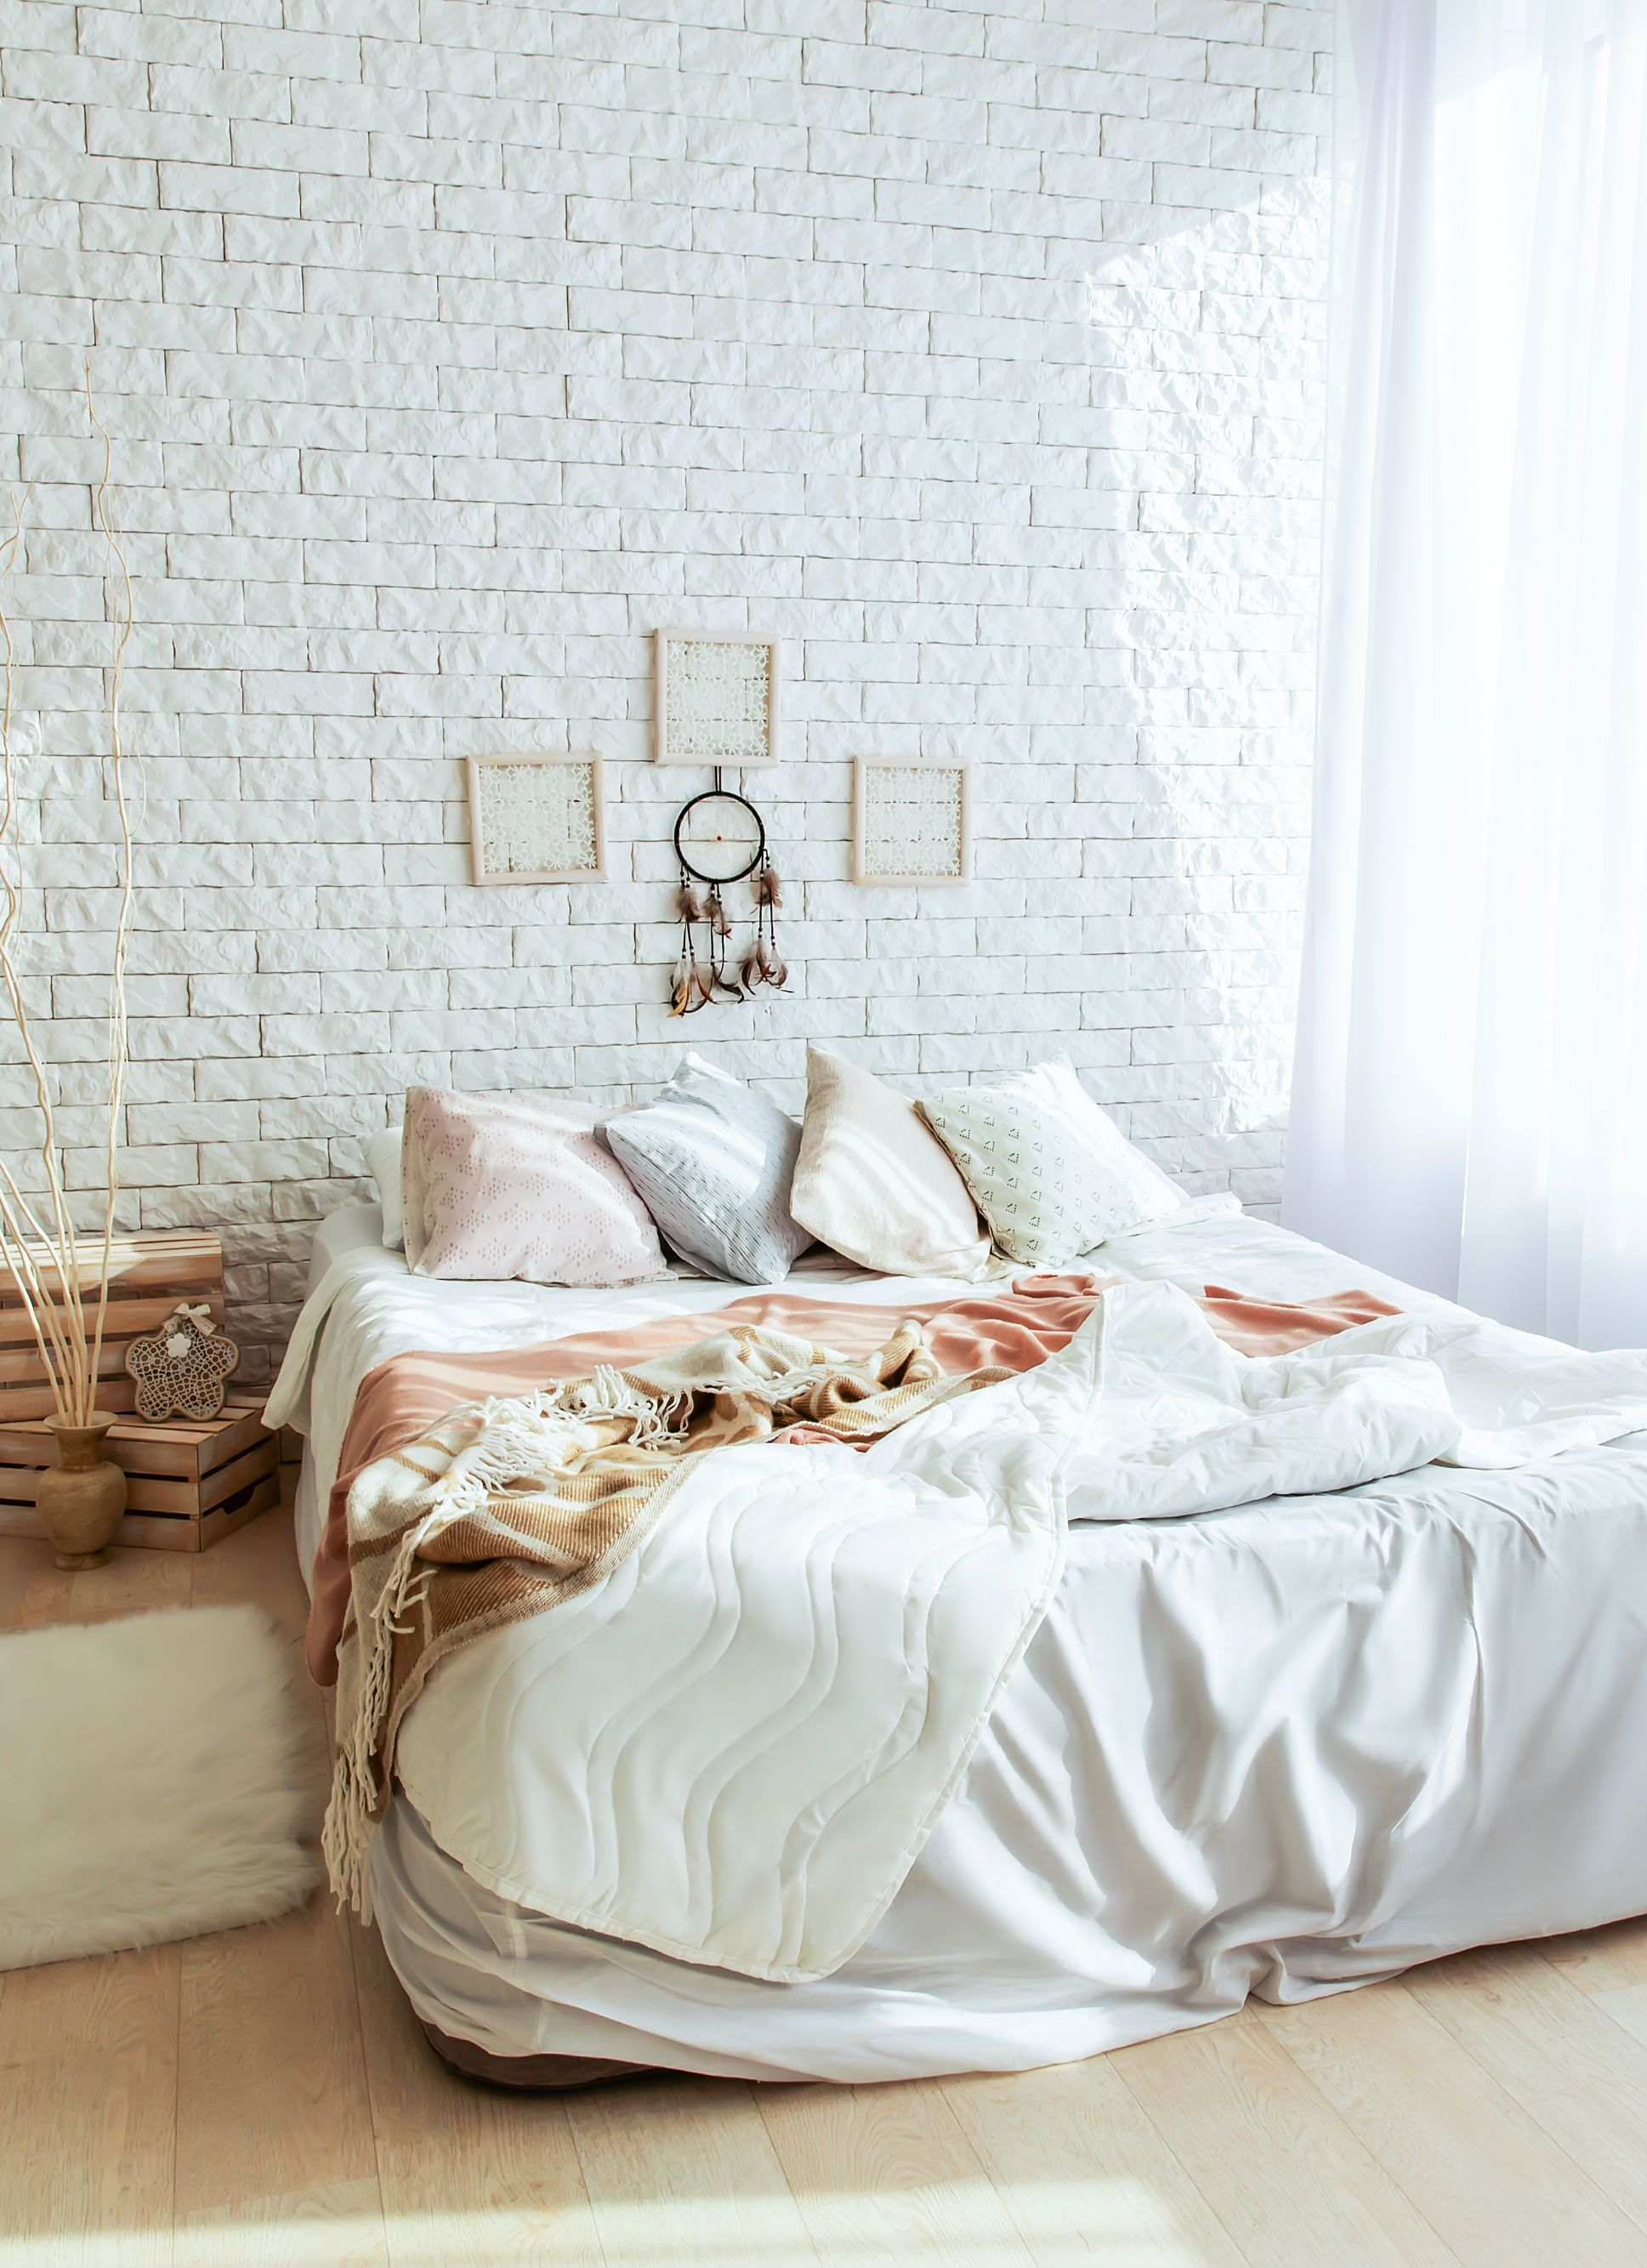 amusing brick accent wall bedroom | A cozy bedroom design idea with a whitewashed brick accent ...